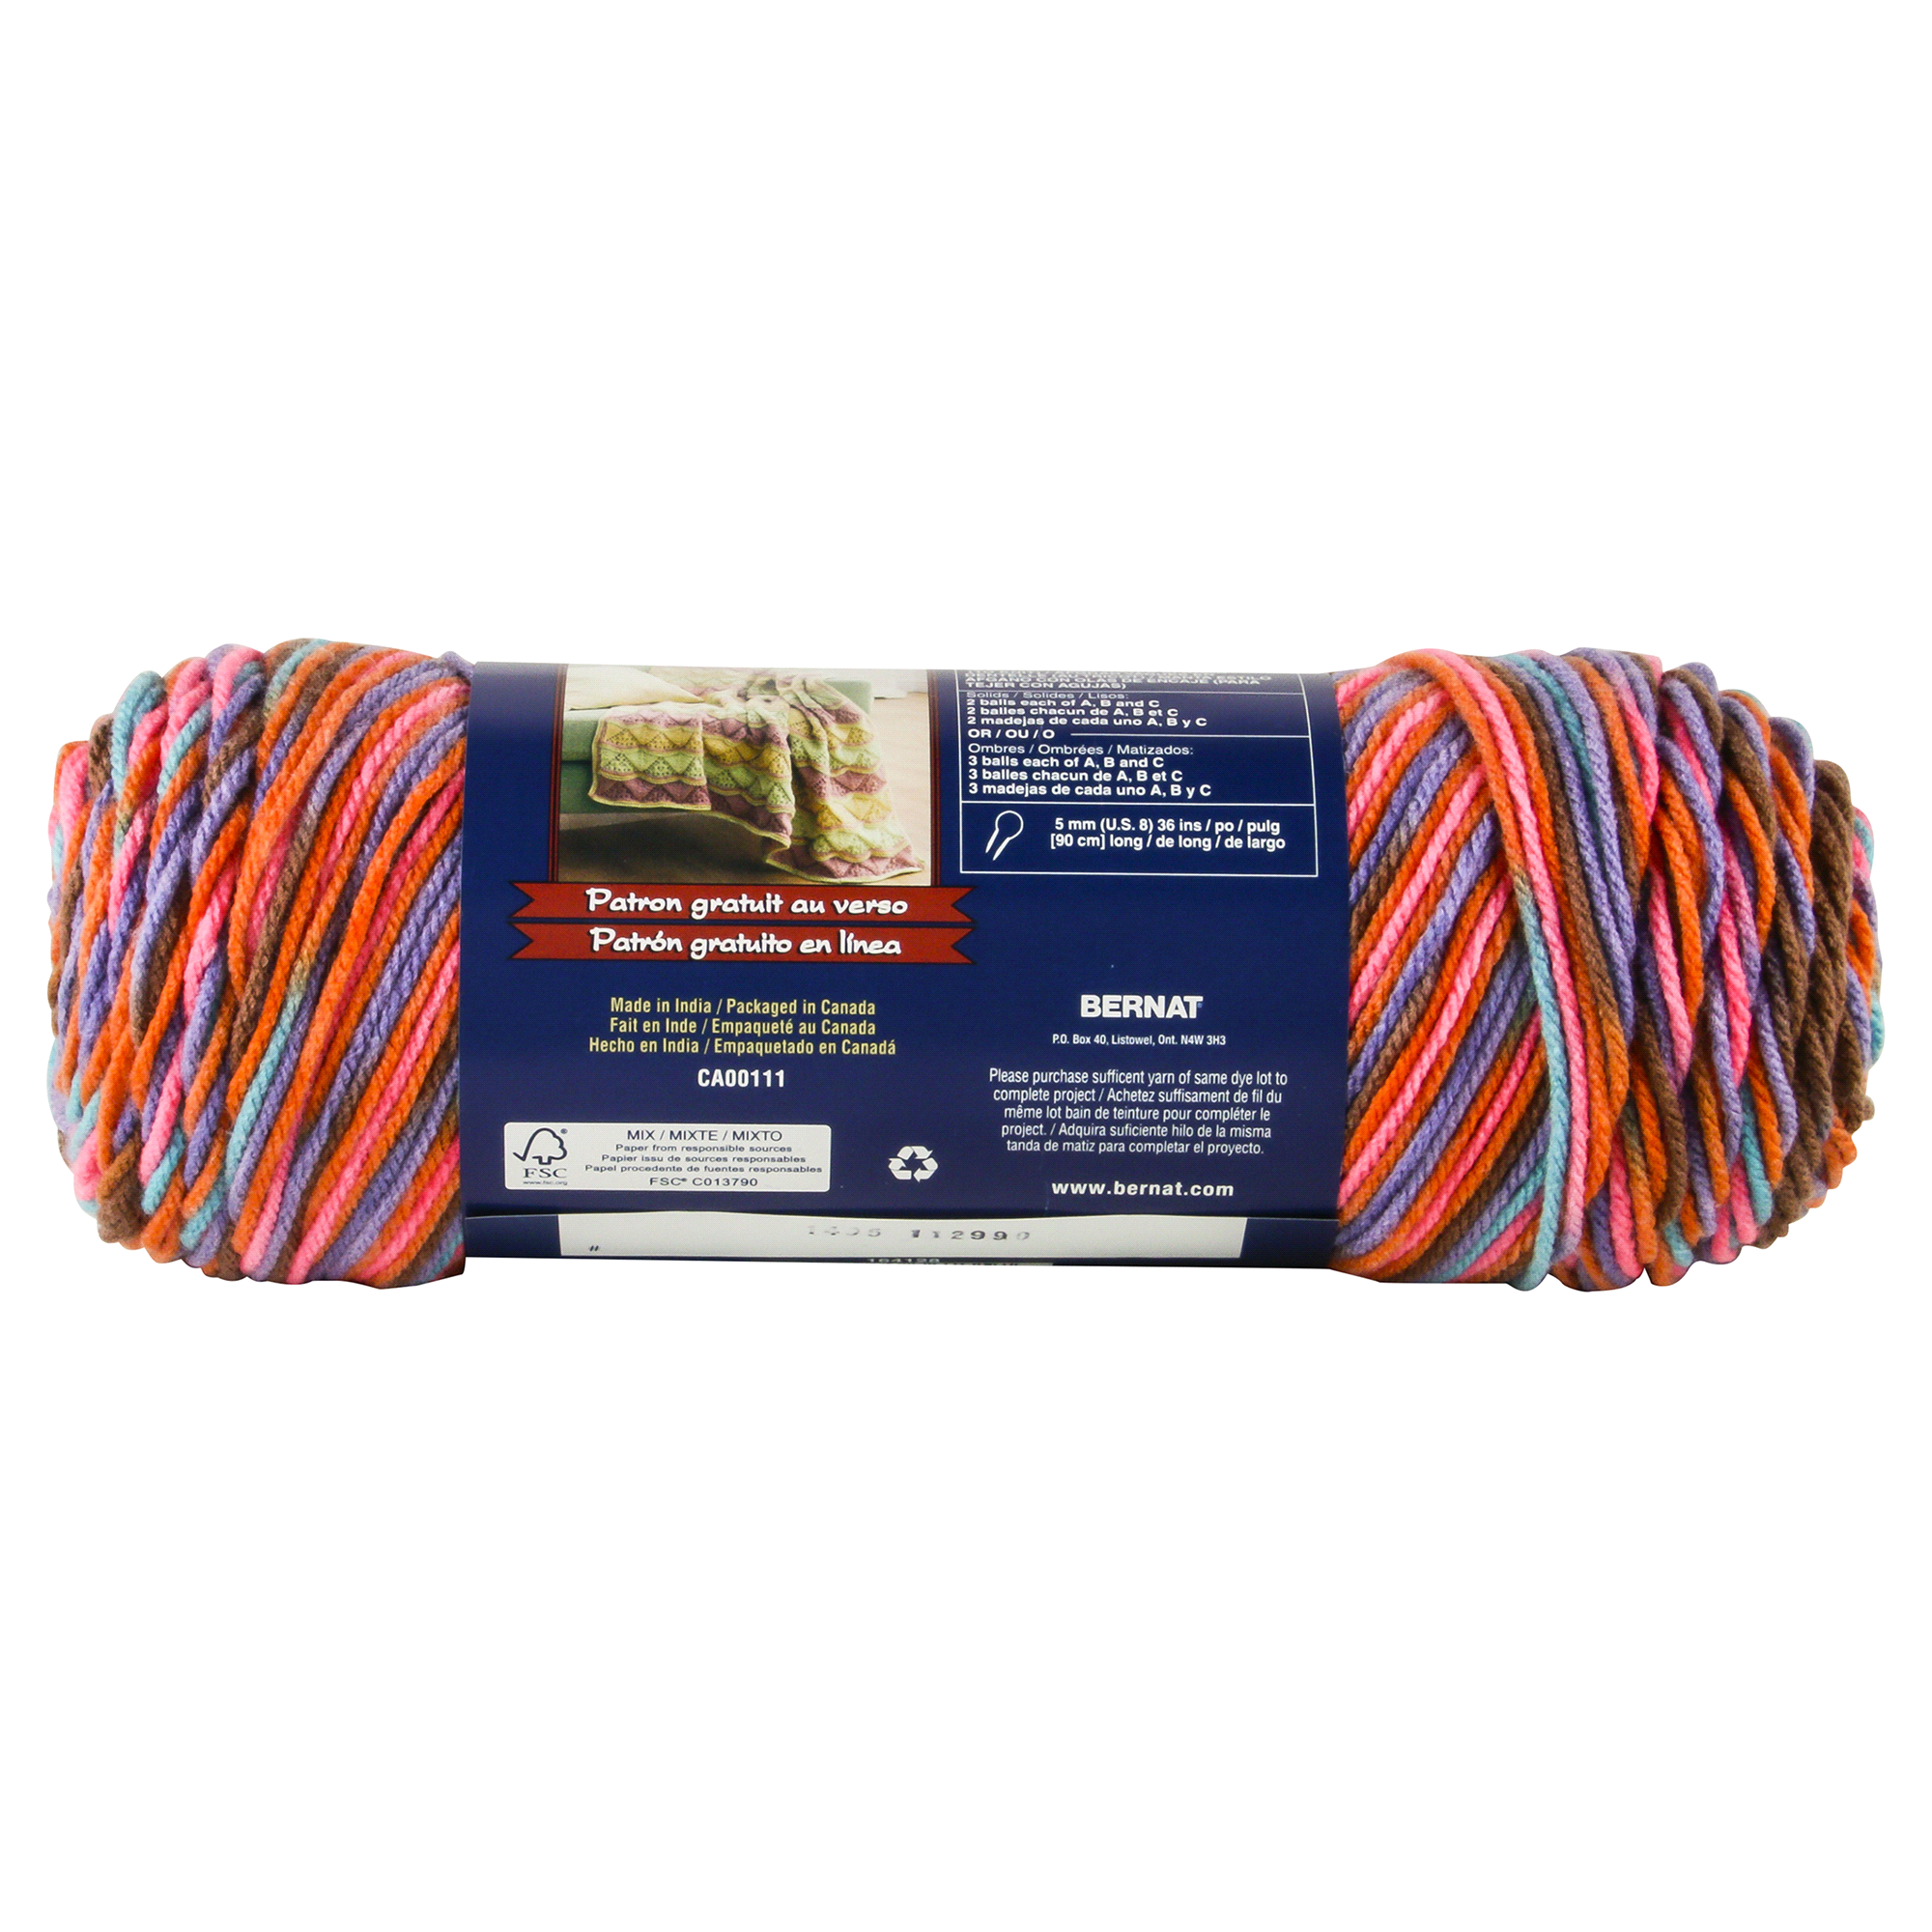 Bernat Super Value Yarn - Sedona Sunset Ombre | Meijer.com